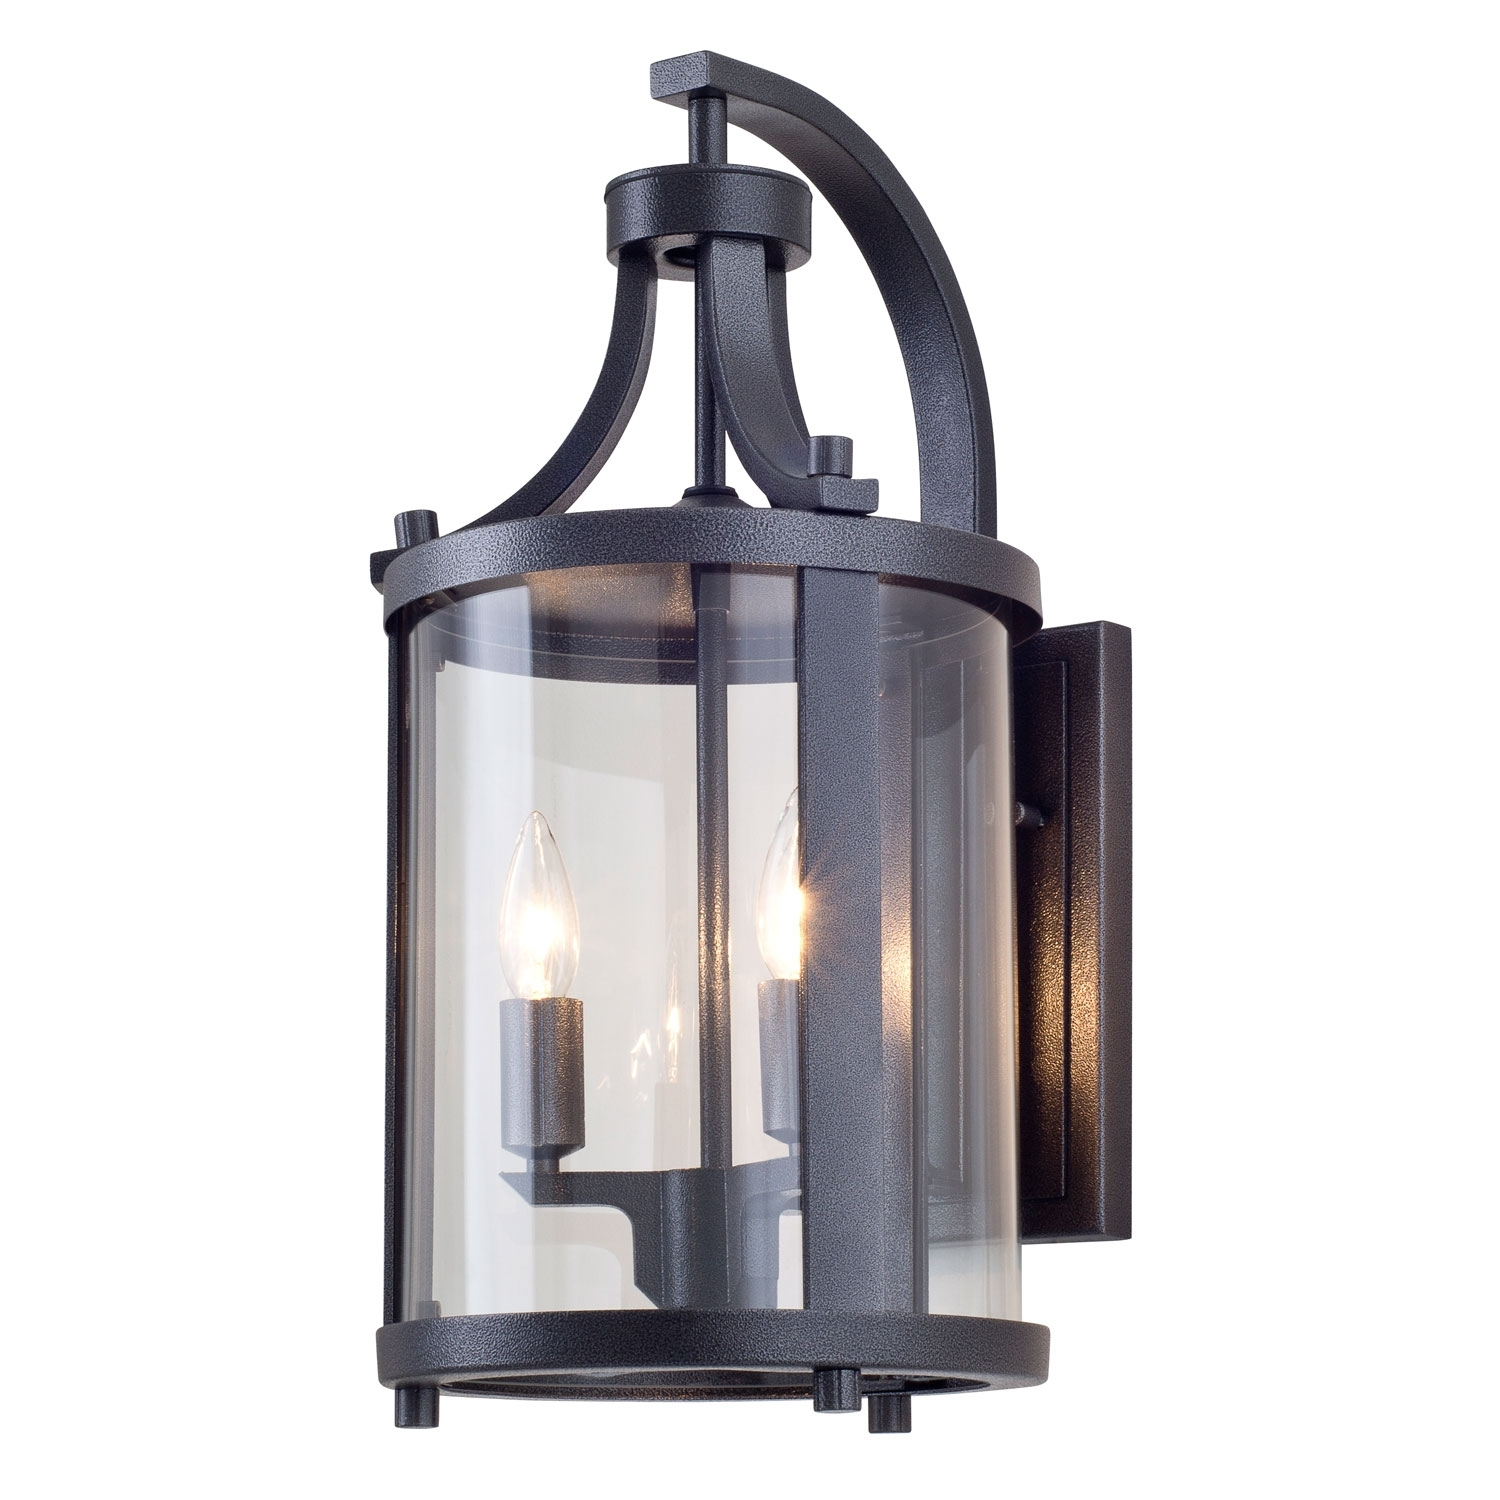 Outdoor Wall Lighting On Sale | Bellacor For New England Style Outdoor Lighting (View 14 of 15)